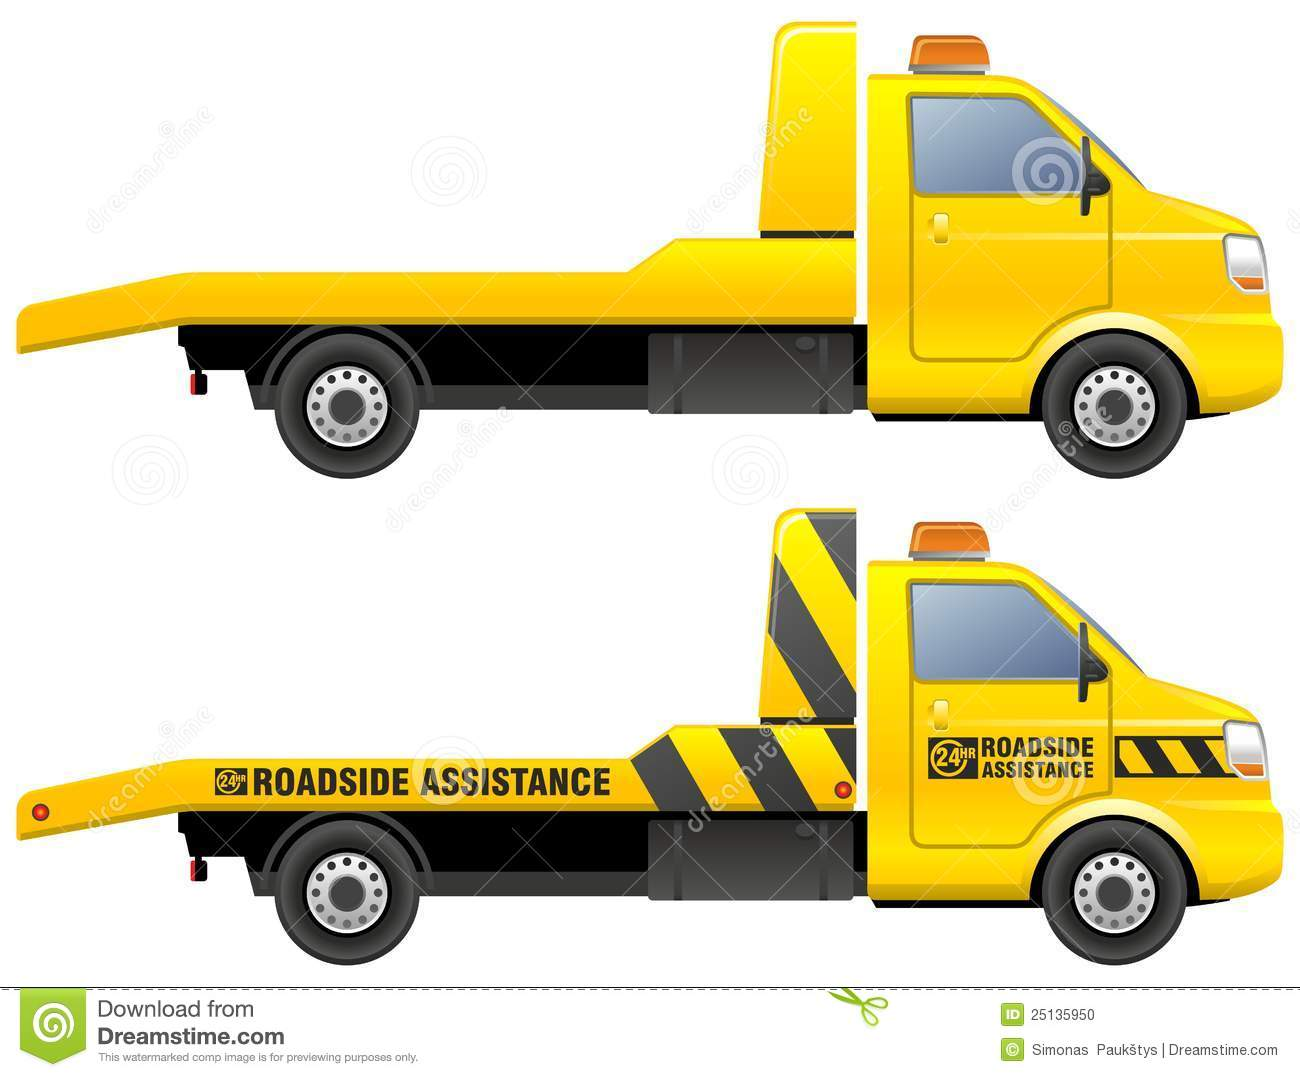 Towing company business plan